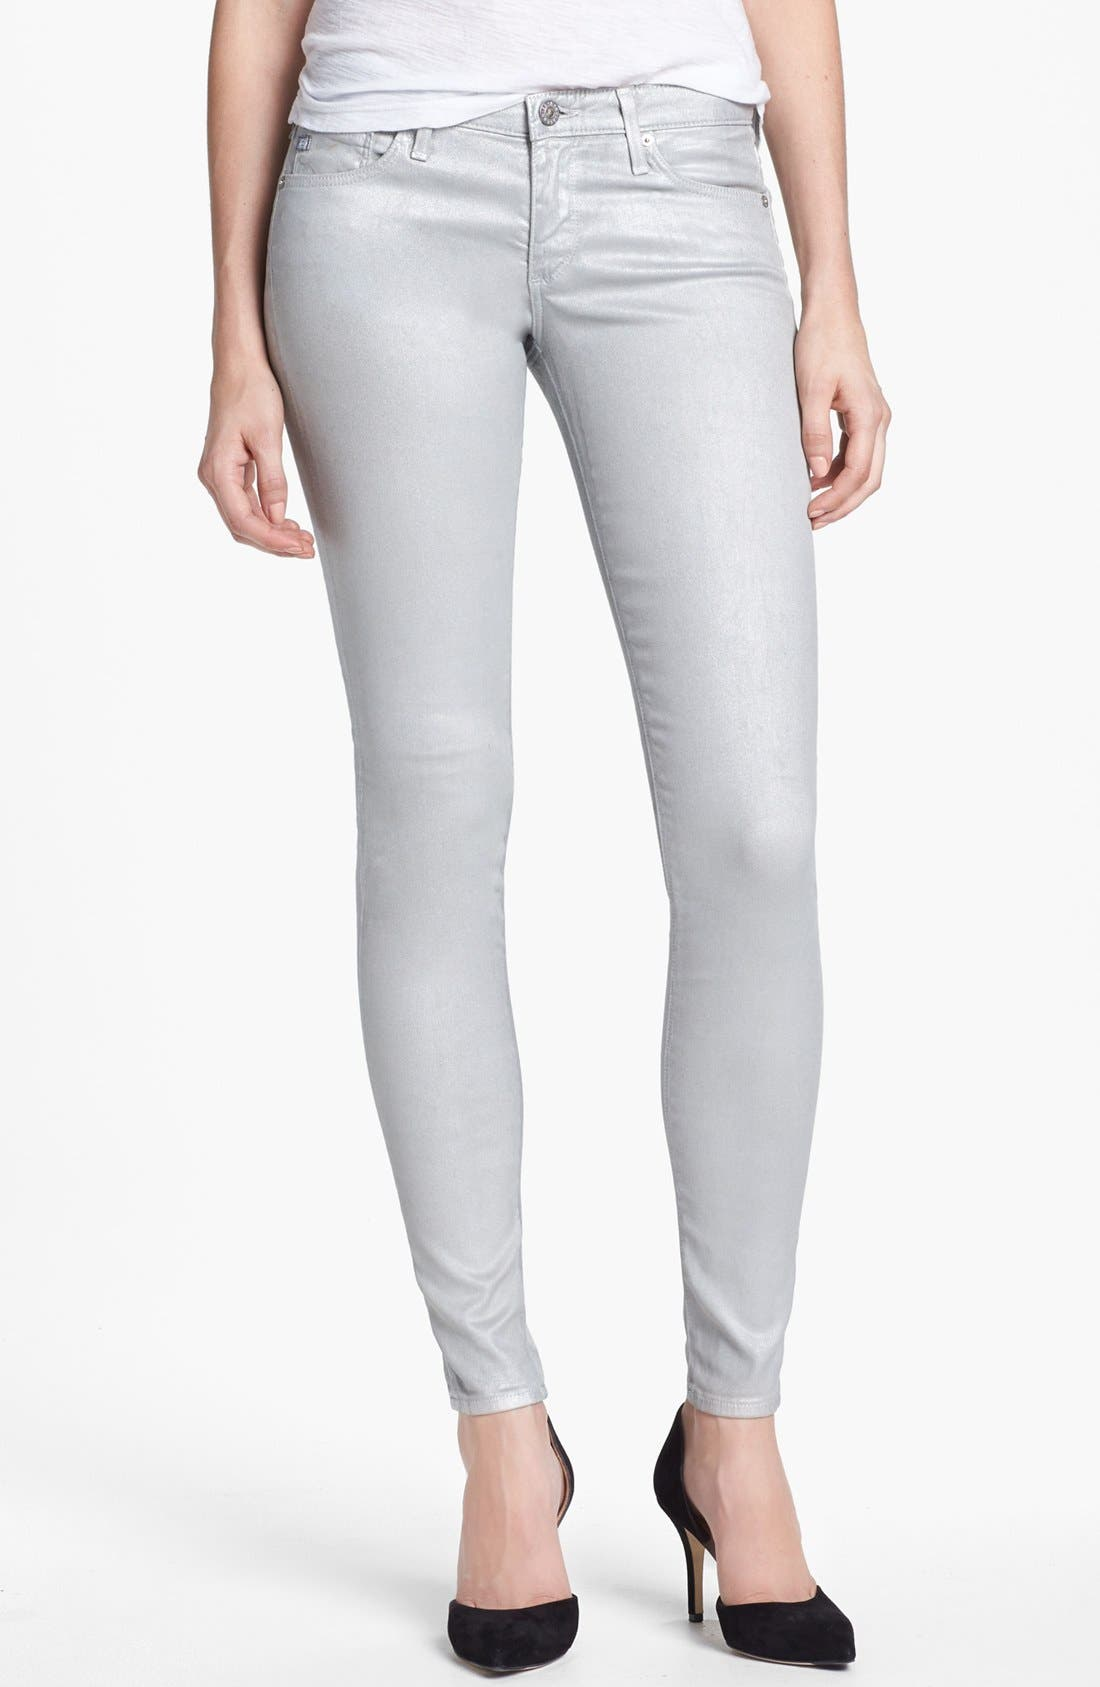 Main Image - AG Jeans 'The Absolute Legging' Metallic Skinny Jeans (Eyeshadow Silver)